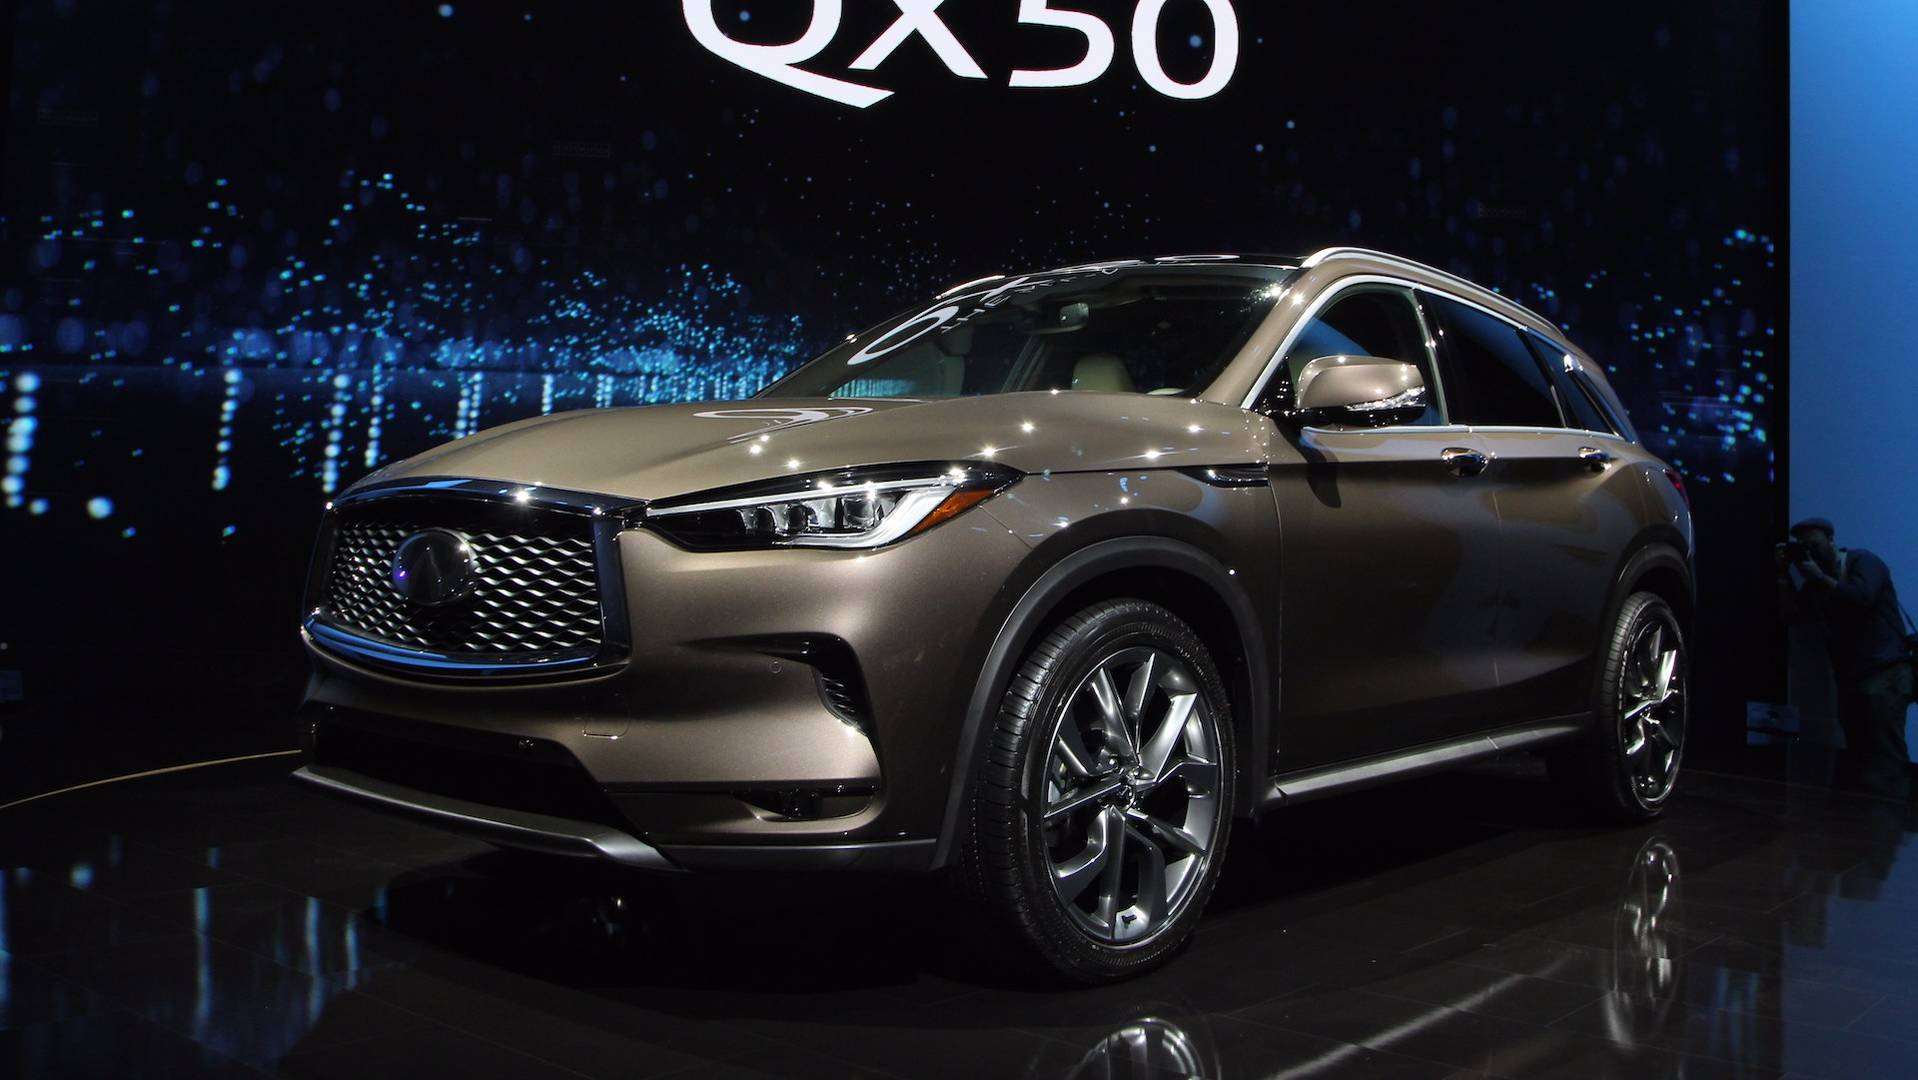 Infiniti actively makes 5 new products